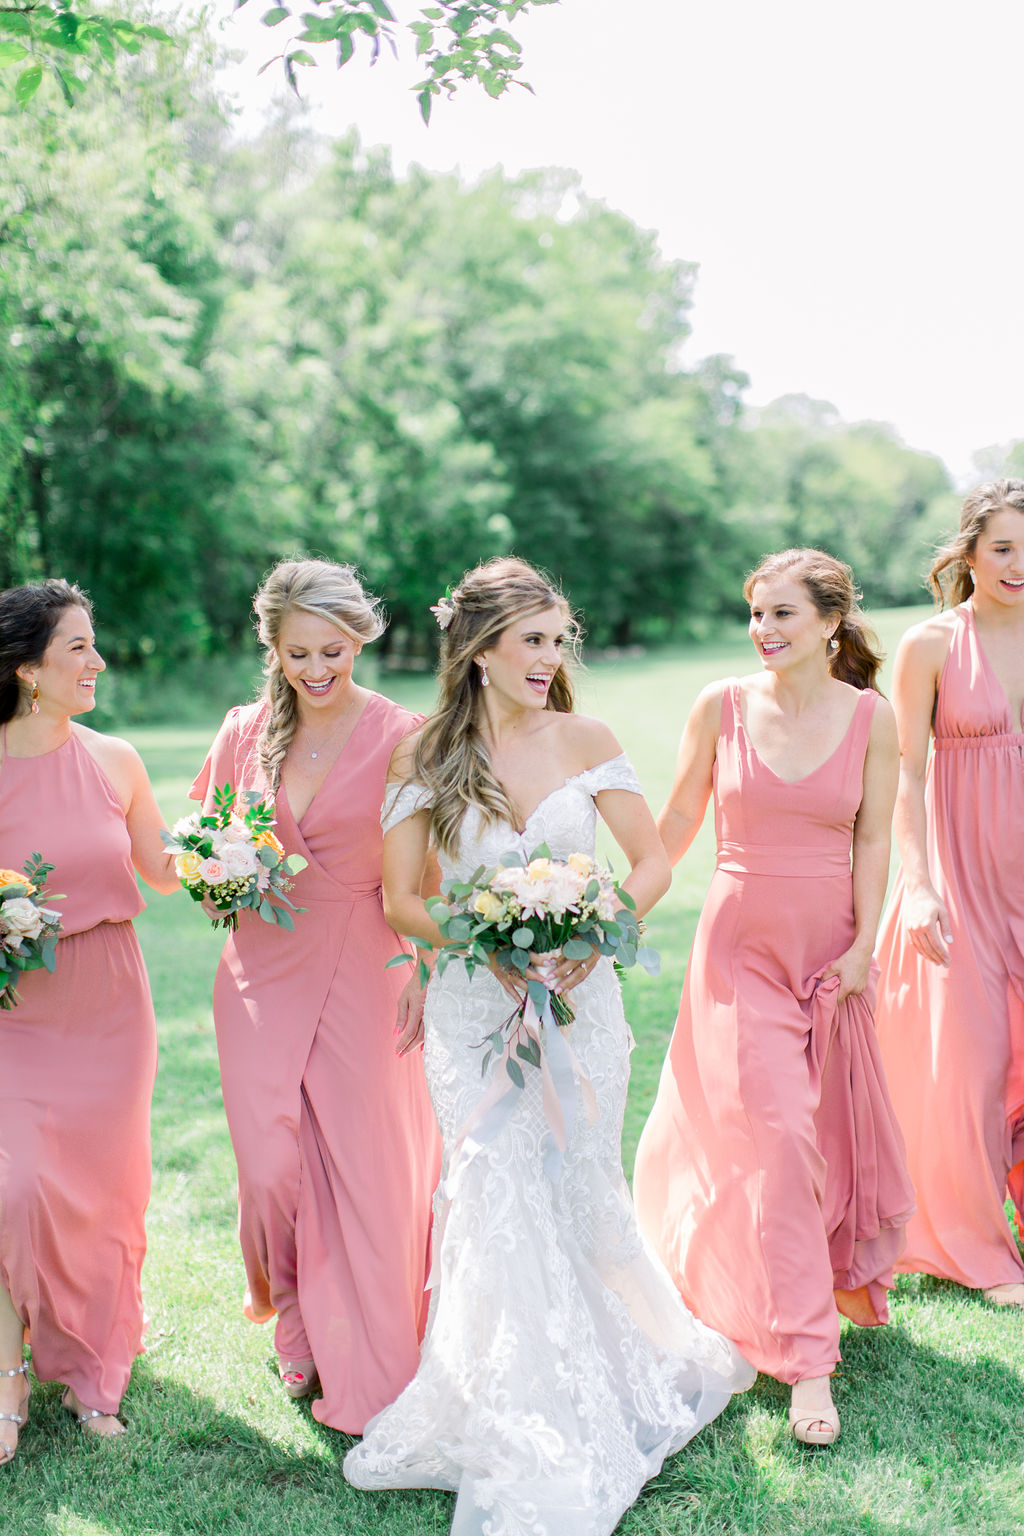 Iowa bride in lace couture gown from Des Moines Iowa, bridesmaids in blush dresses, holding bouquets of blush, white and apricot color roses with eucalyptus. Bride laughs and walks with bridesmaids at propoery in Adel Iowa